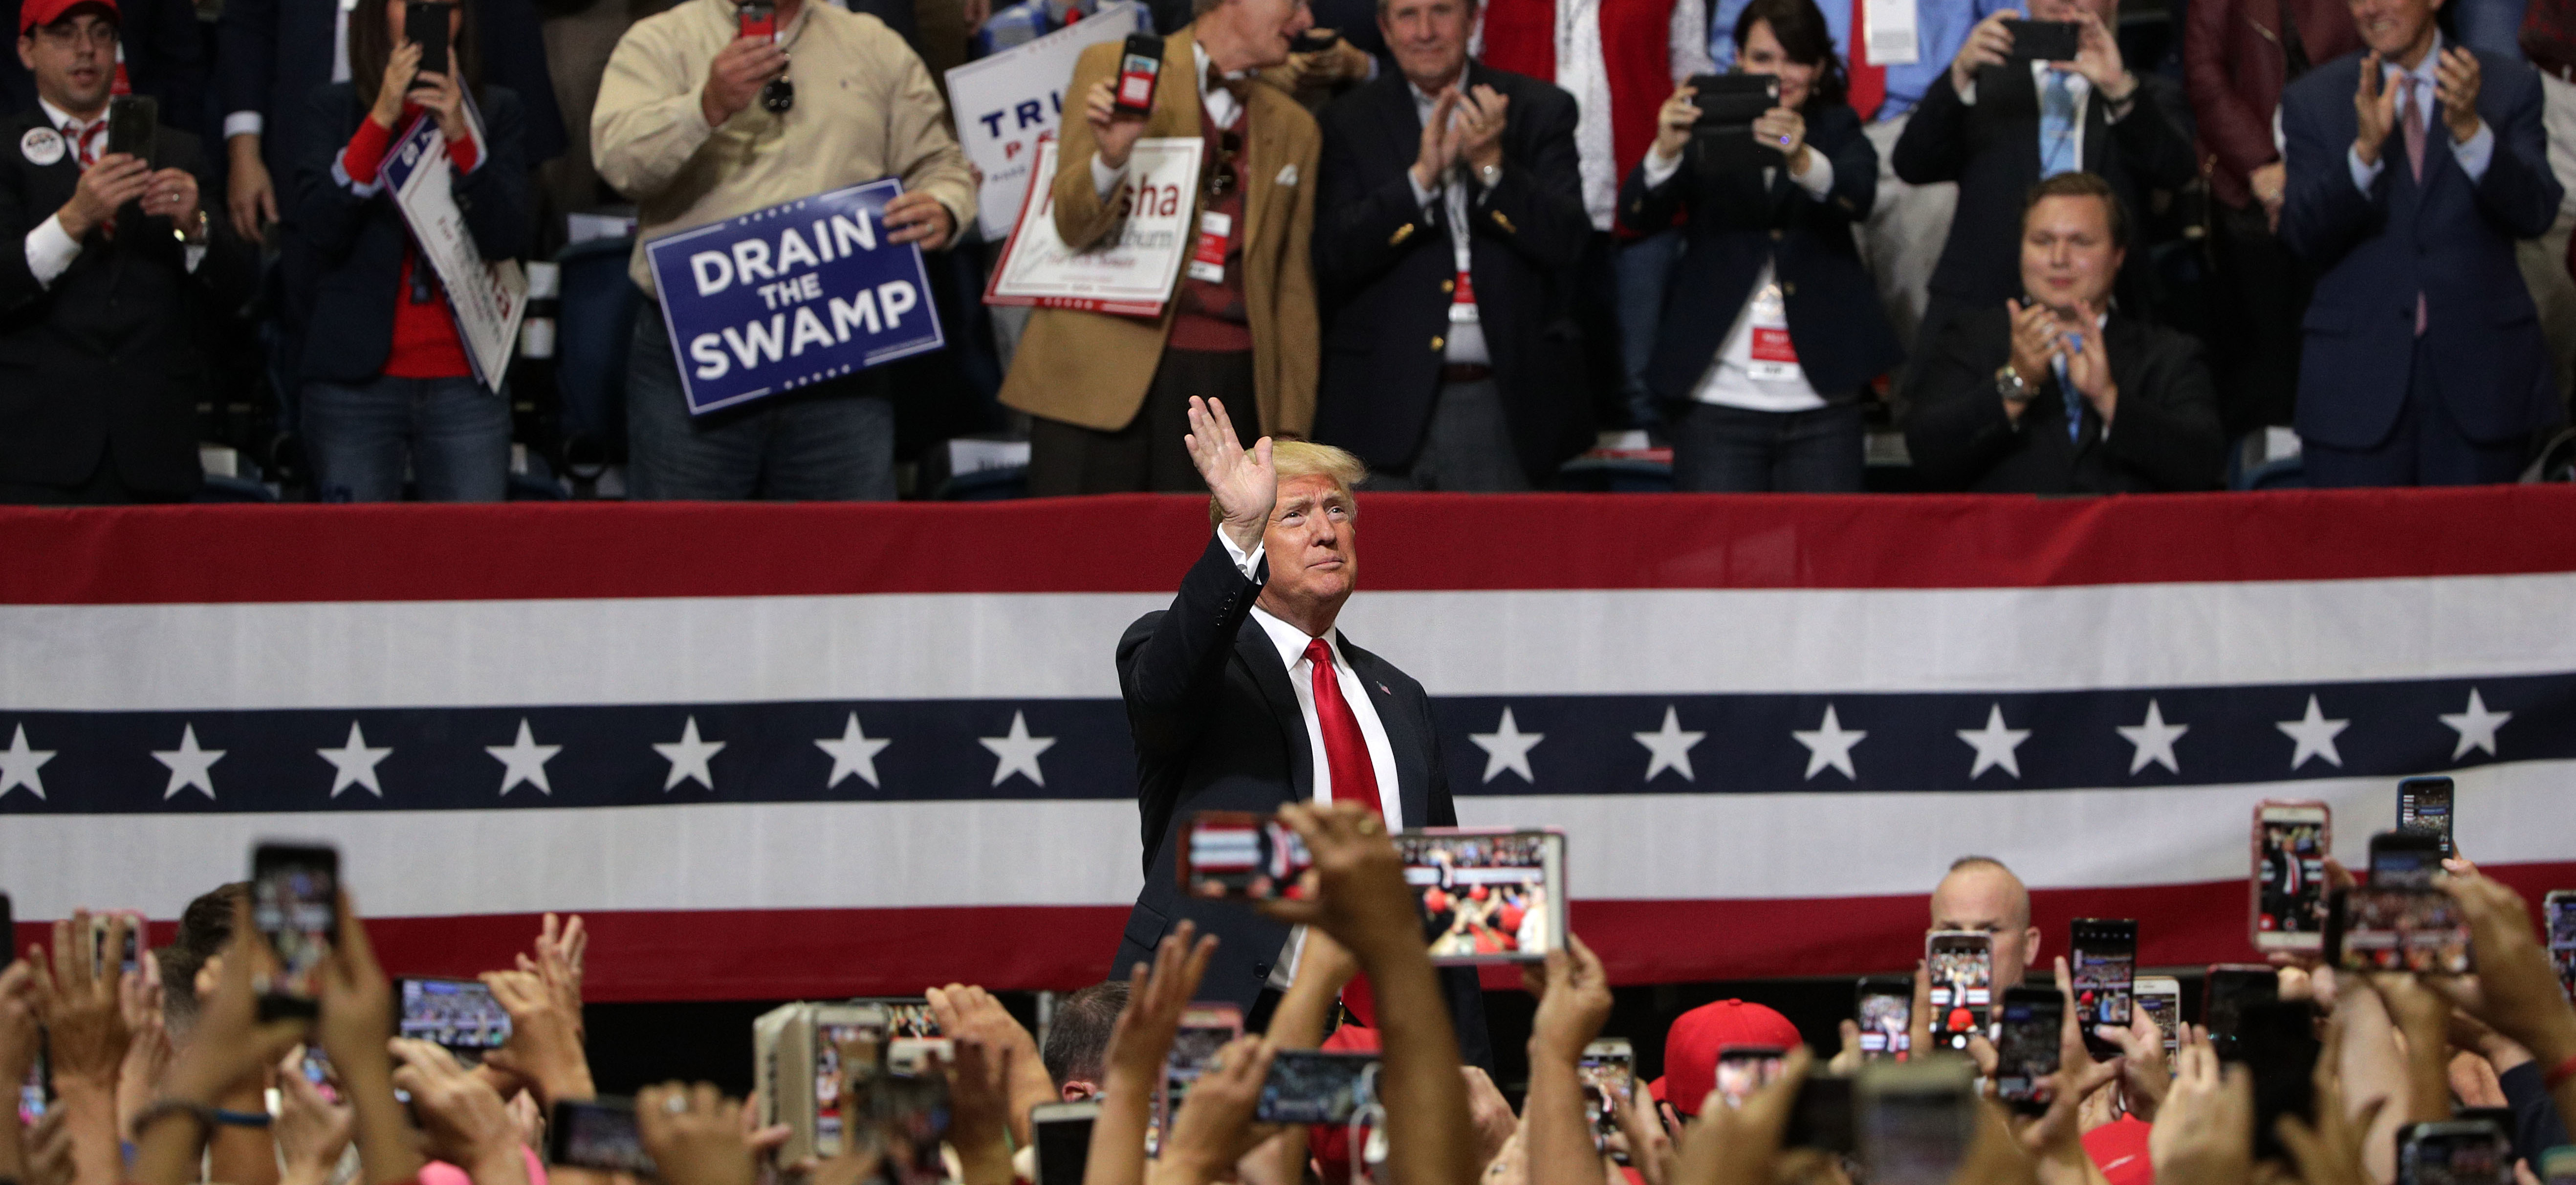 President Trump acknowledges supporters during a campaign rally for Rep. Marsha Blackburn, R-Tenn., and other Tennessee Republican candidates November 5, 2018, in Chattanooga, Tenn. (Alex Wong/Getty Images)